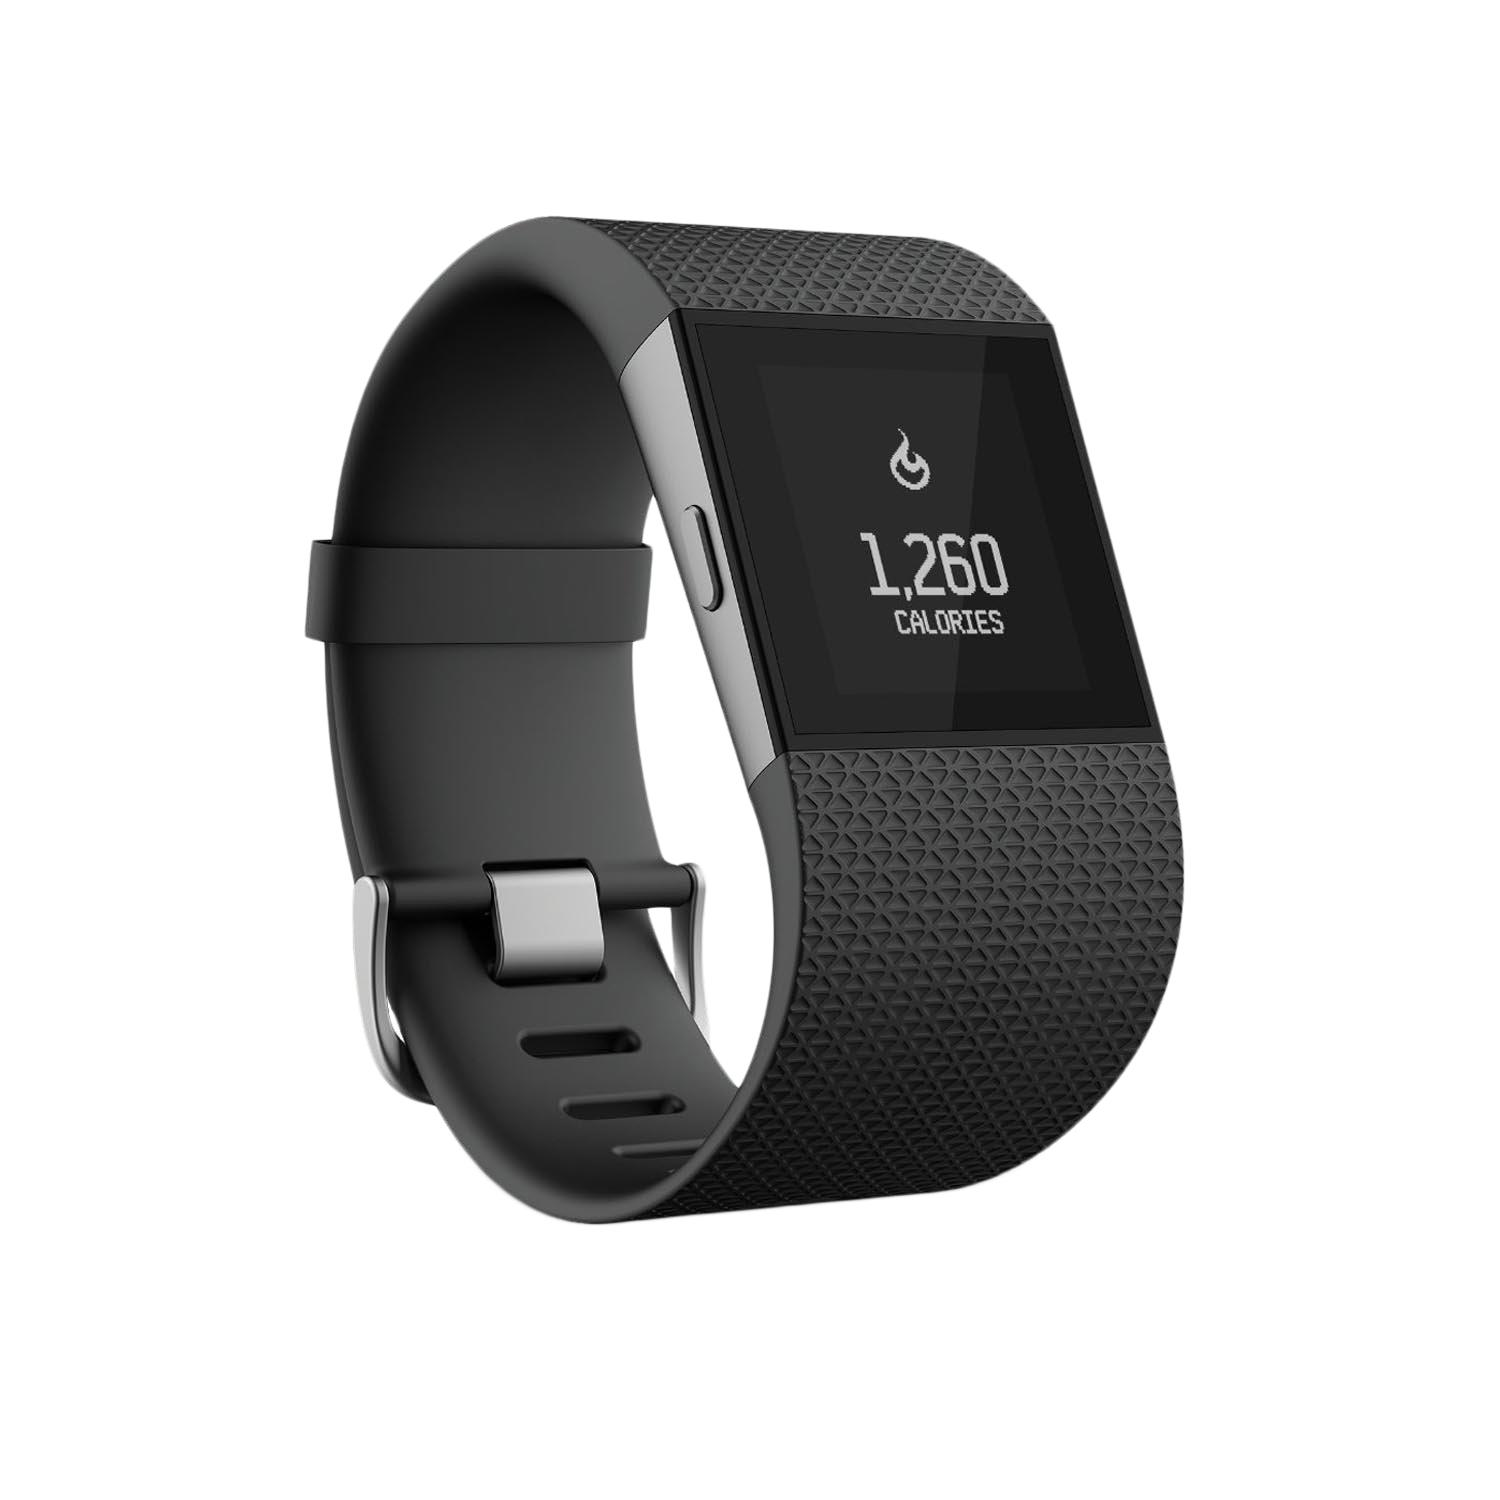 A Fitbit fitness tracker. Police in Connecticut used a murdered woman's device to trace her last movements and use the information to charge her husband as the killer